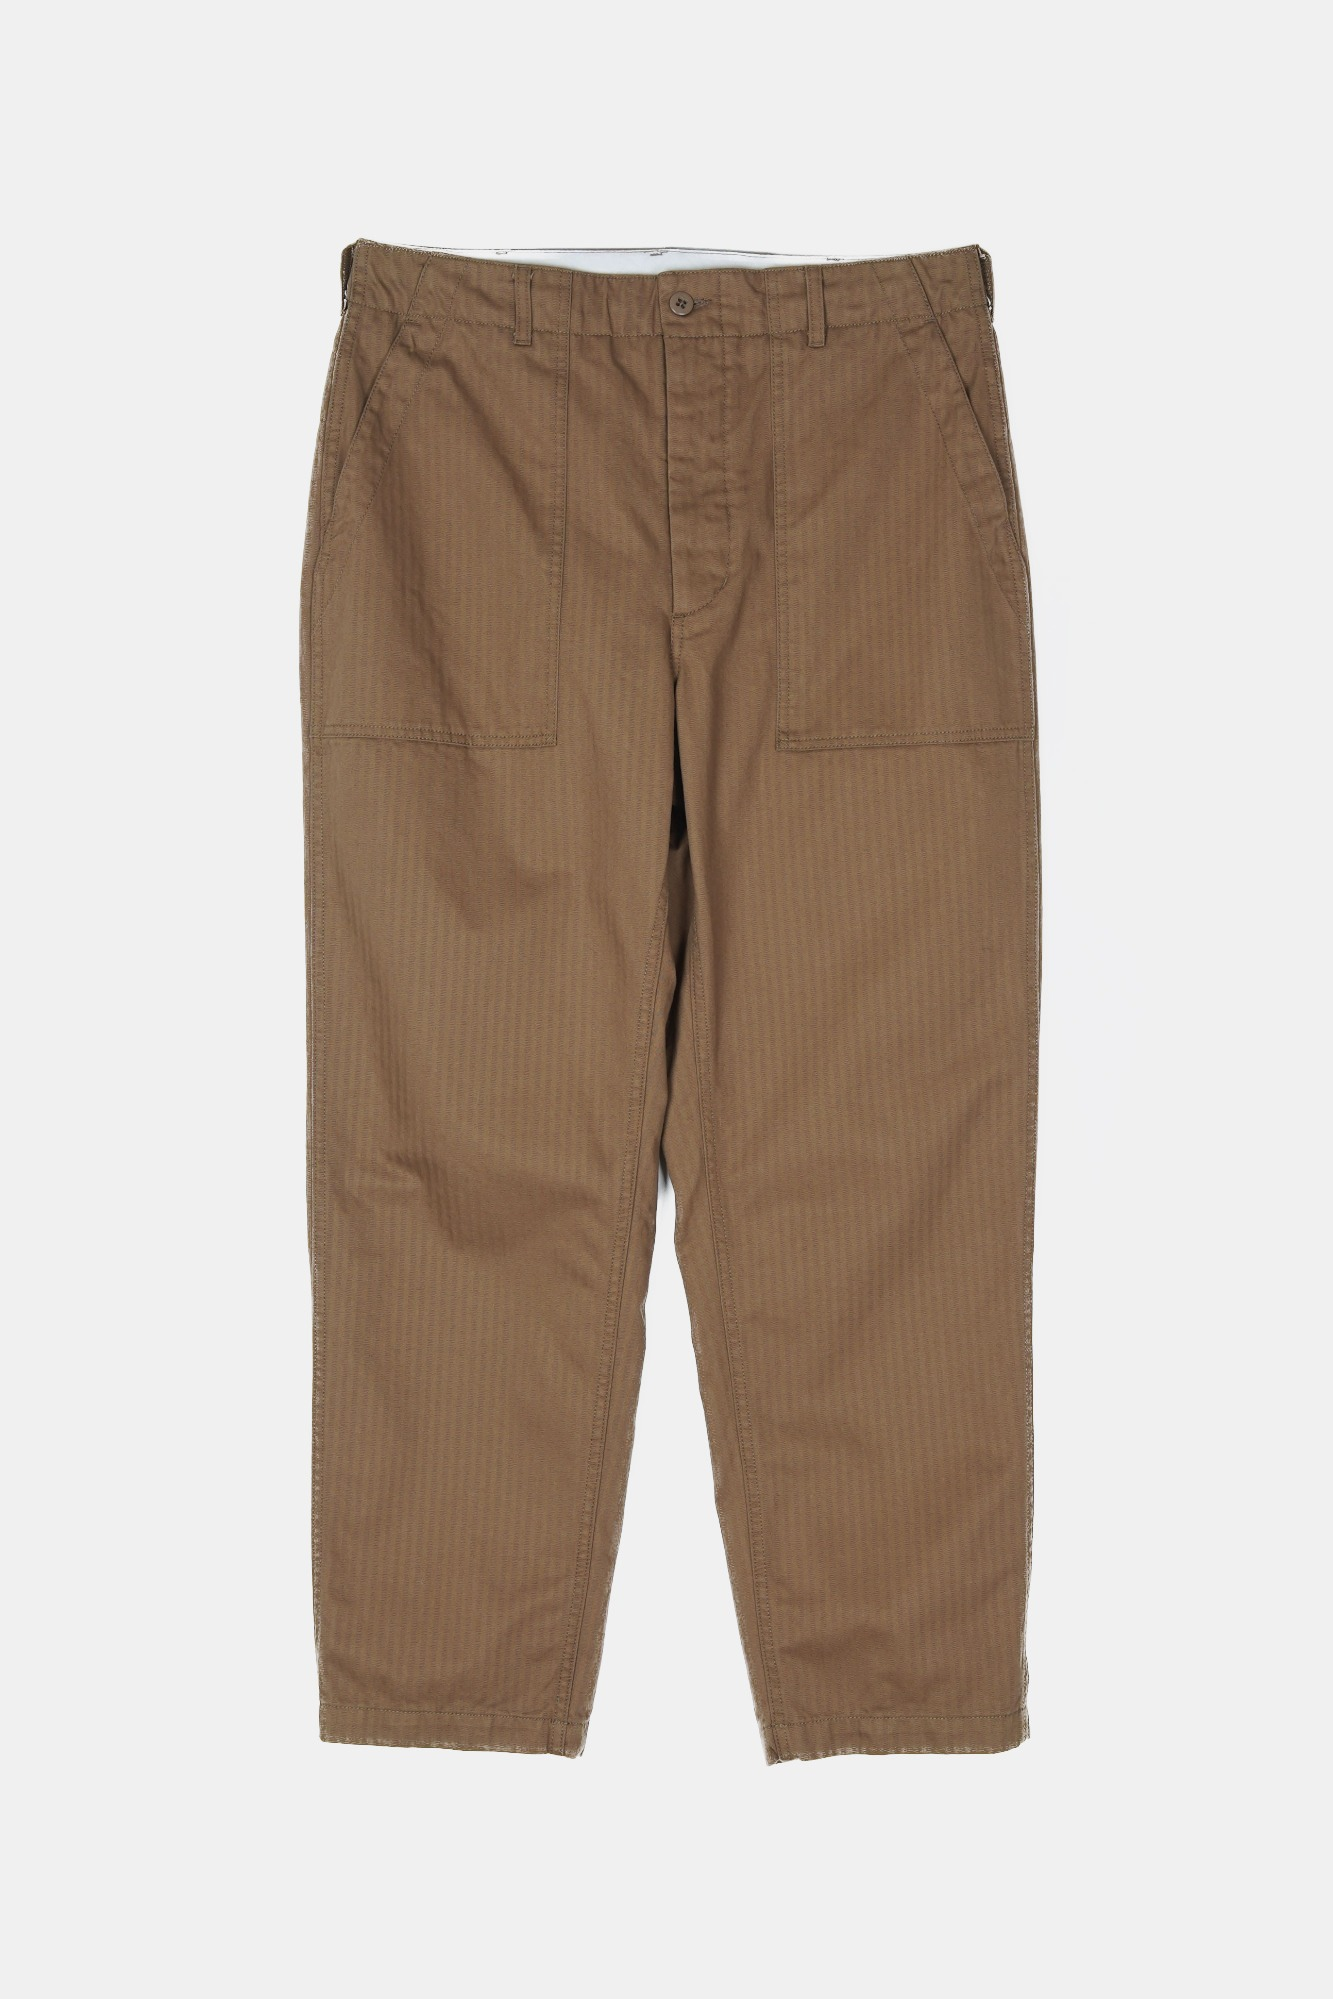 "ENGINEERED GARMENTS Fatique Pants ""Brown Cotton Herringbone Twill"""